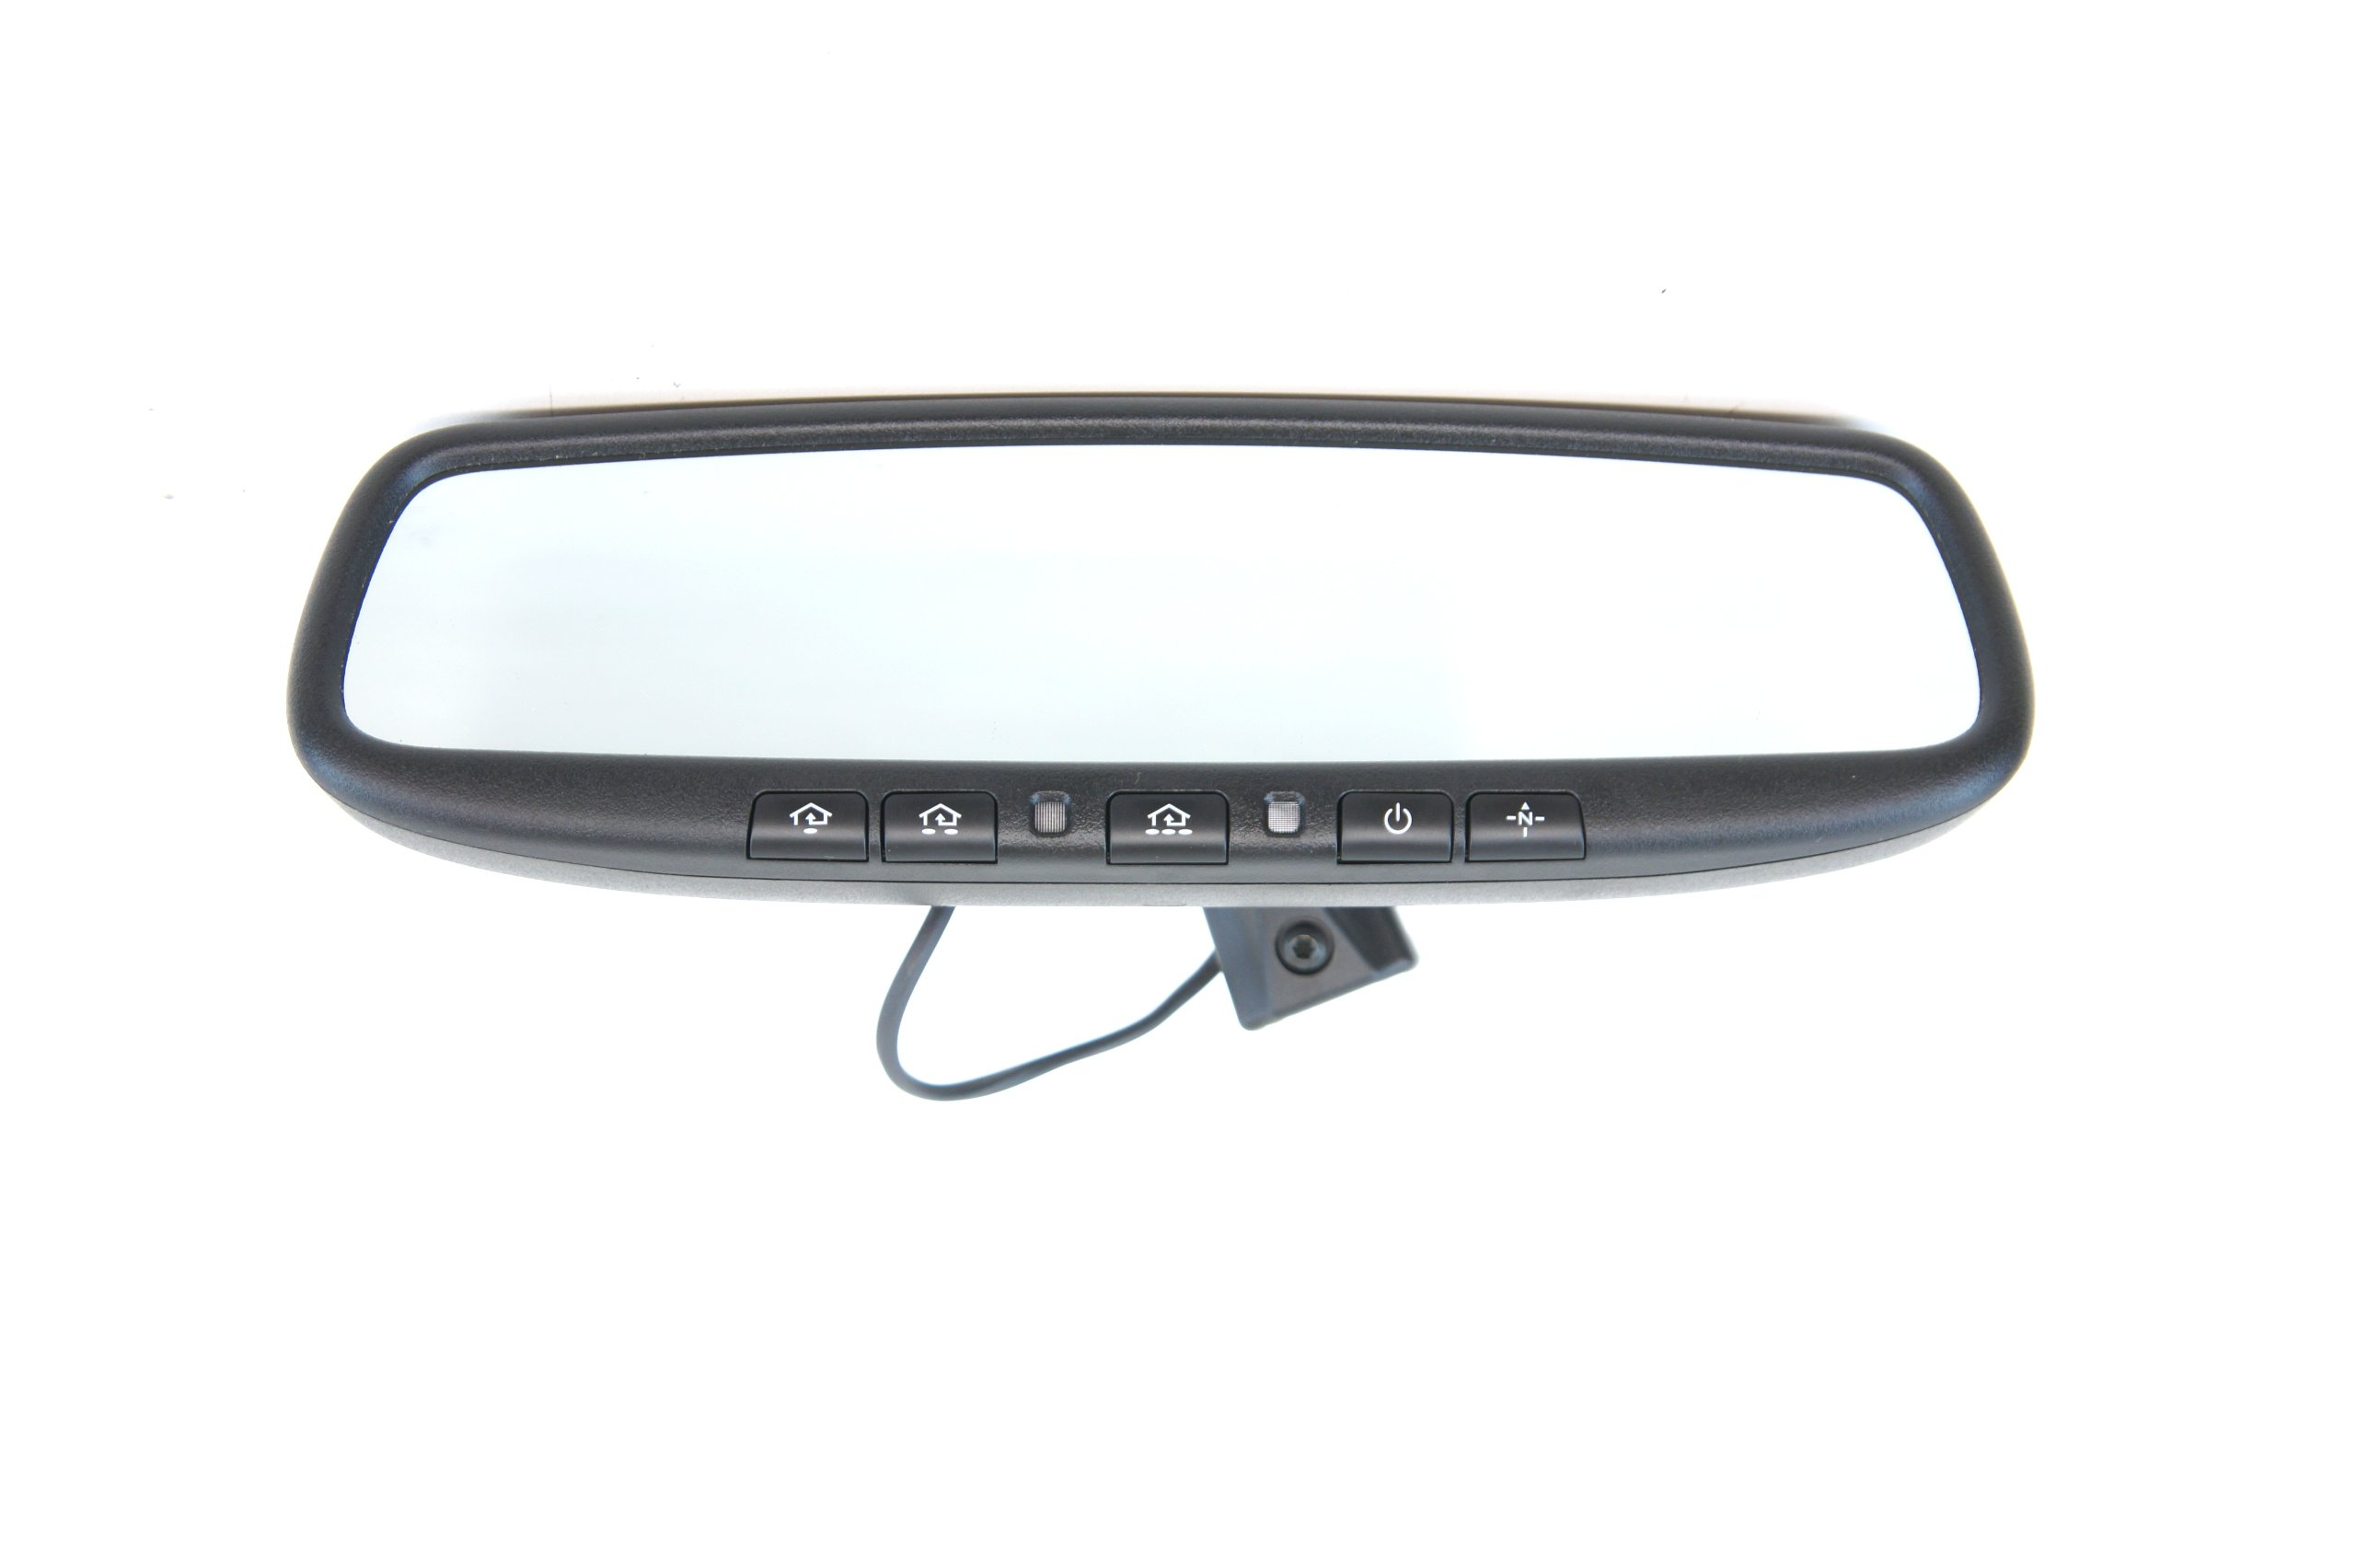 Genuine Hyundai Accessories 3S062-ADU00 Electrochromatic Mirror with Homelink and Compass for Hyundai Sonata